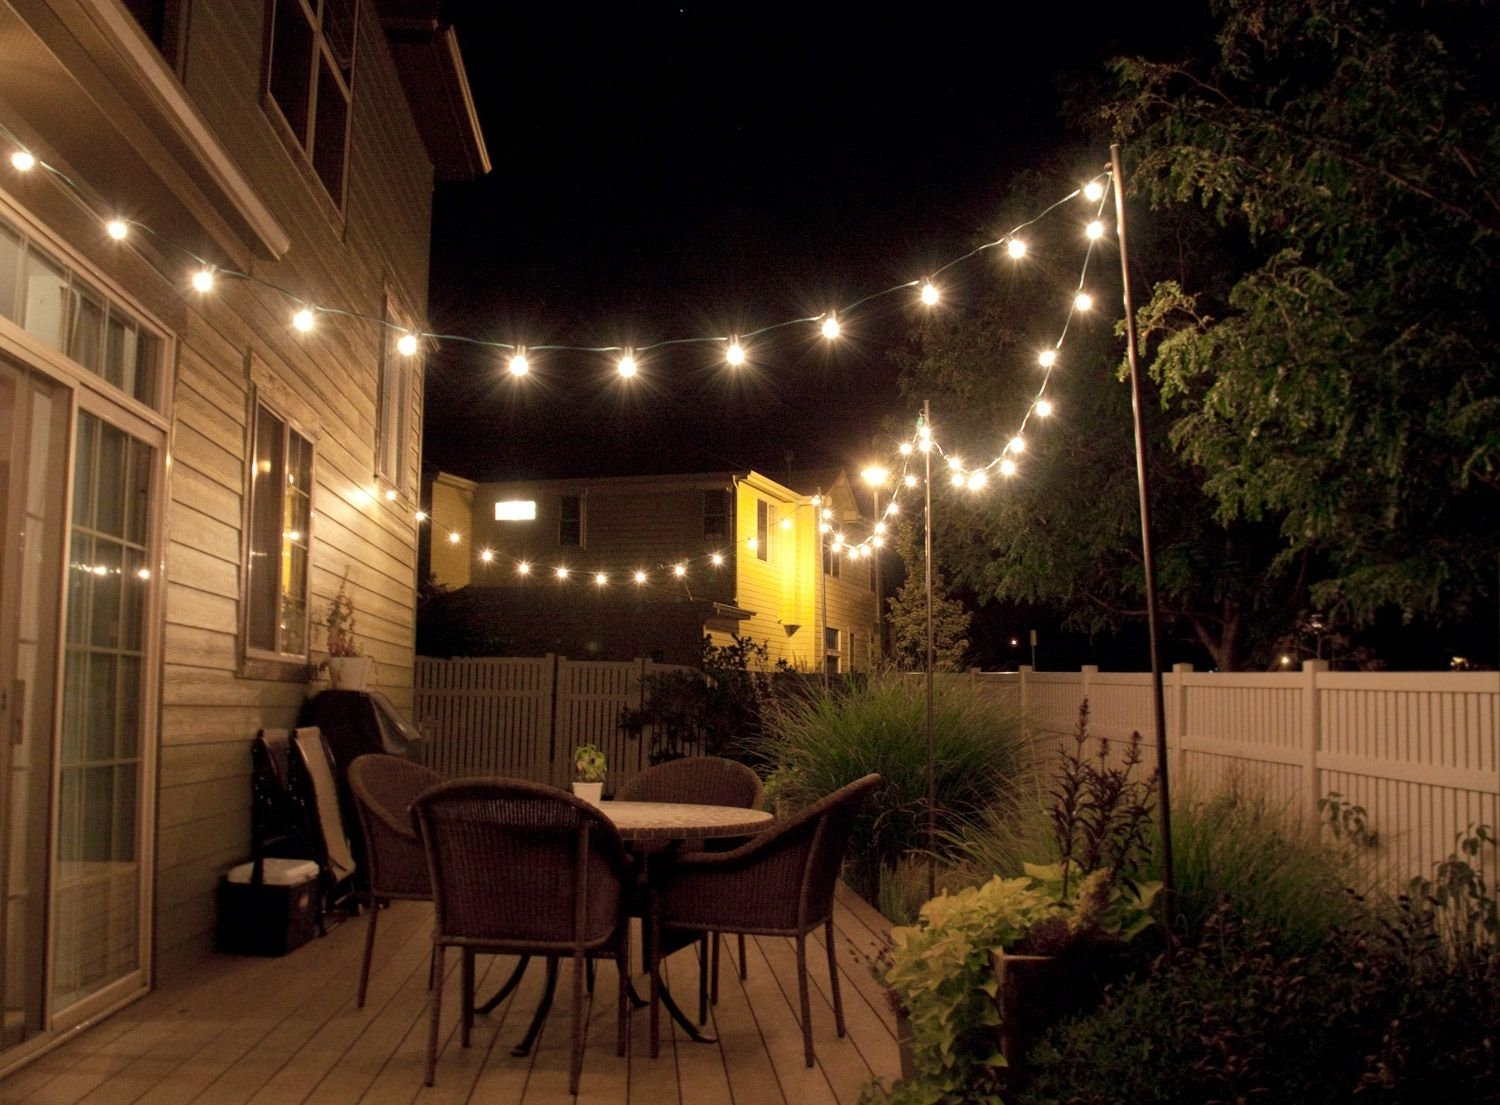 How To Make Inexpensive Poles To Hang String Lights On – Café Style With Outdoor Hanging Wall Lights (#10 of 18)